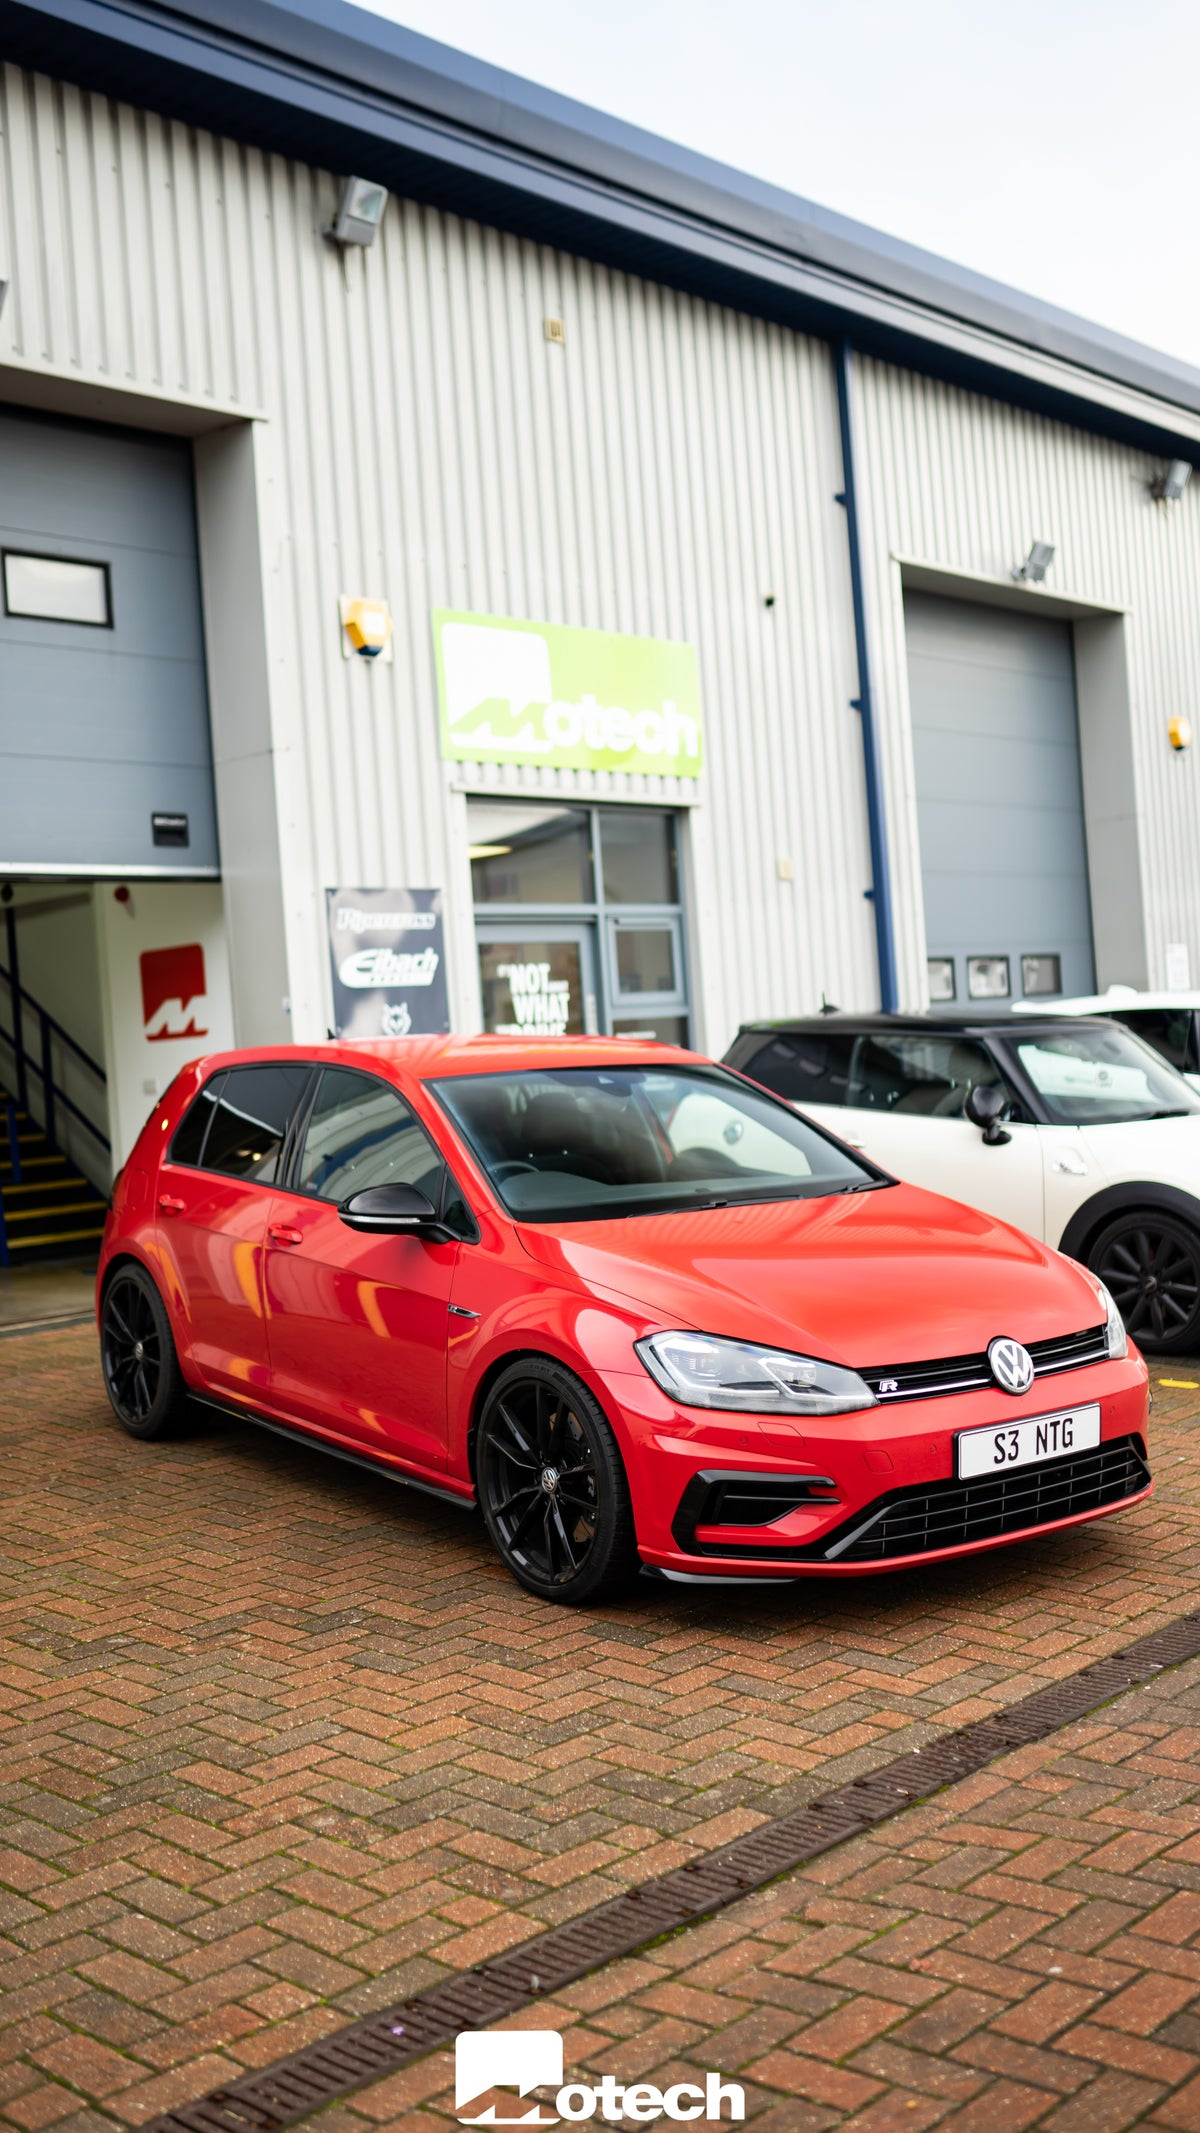 Image of VW MK7/7.5 Golf R Eibach Pro Lowering Springs